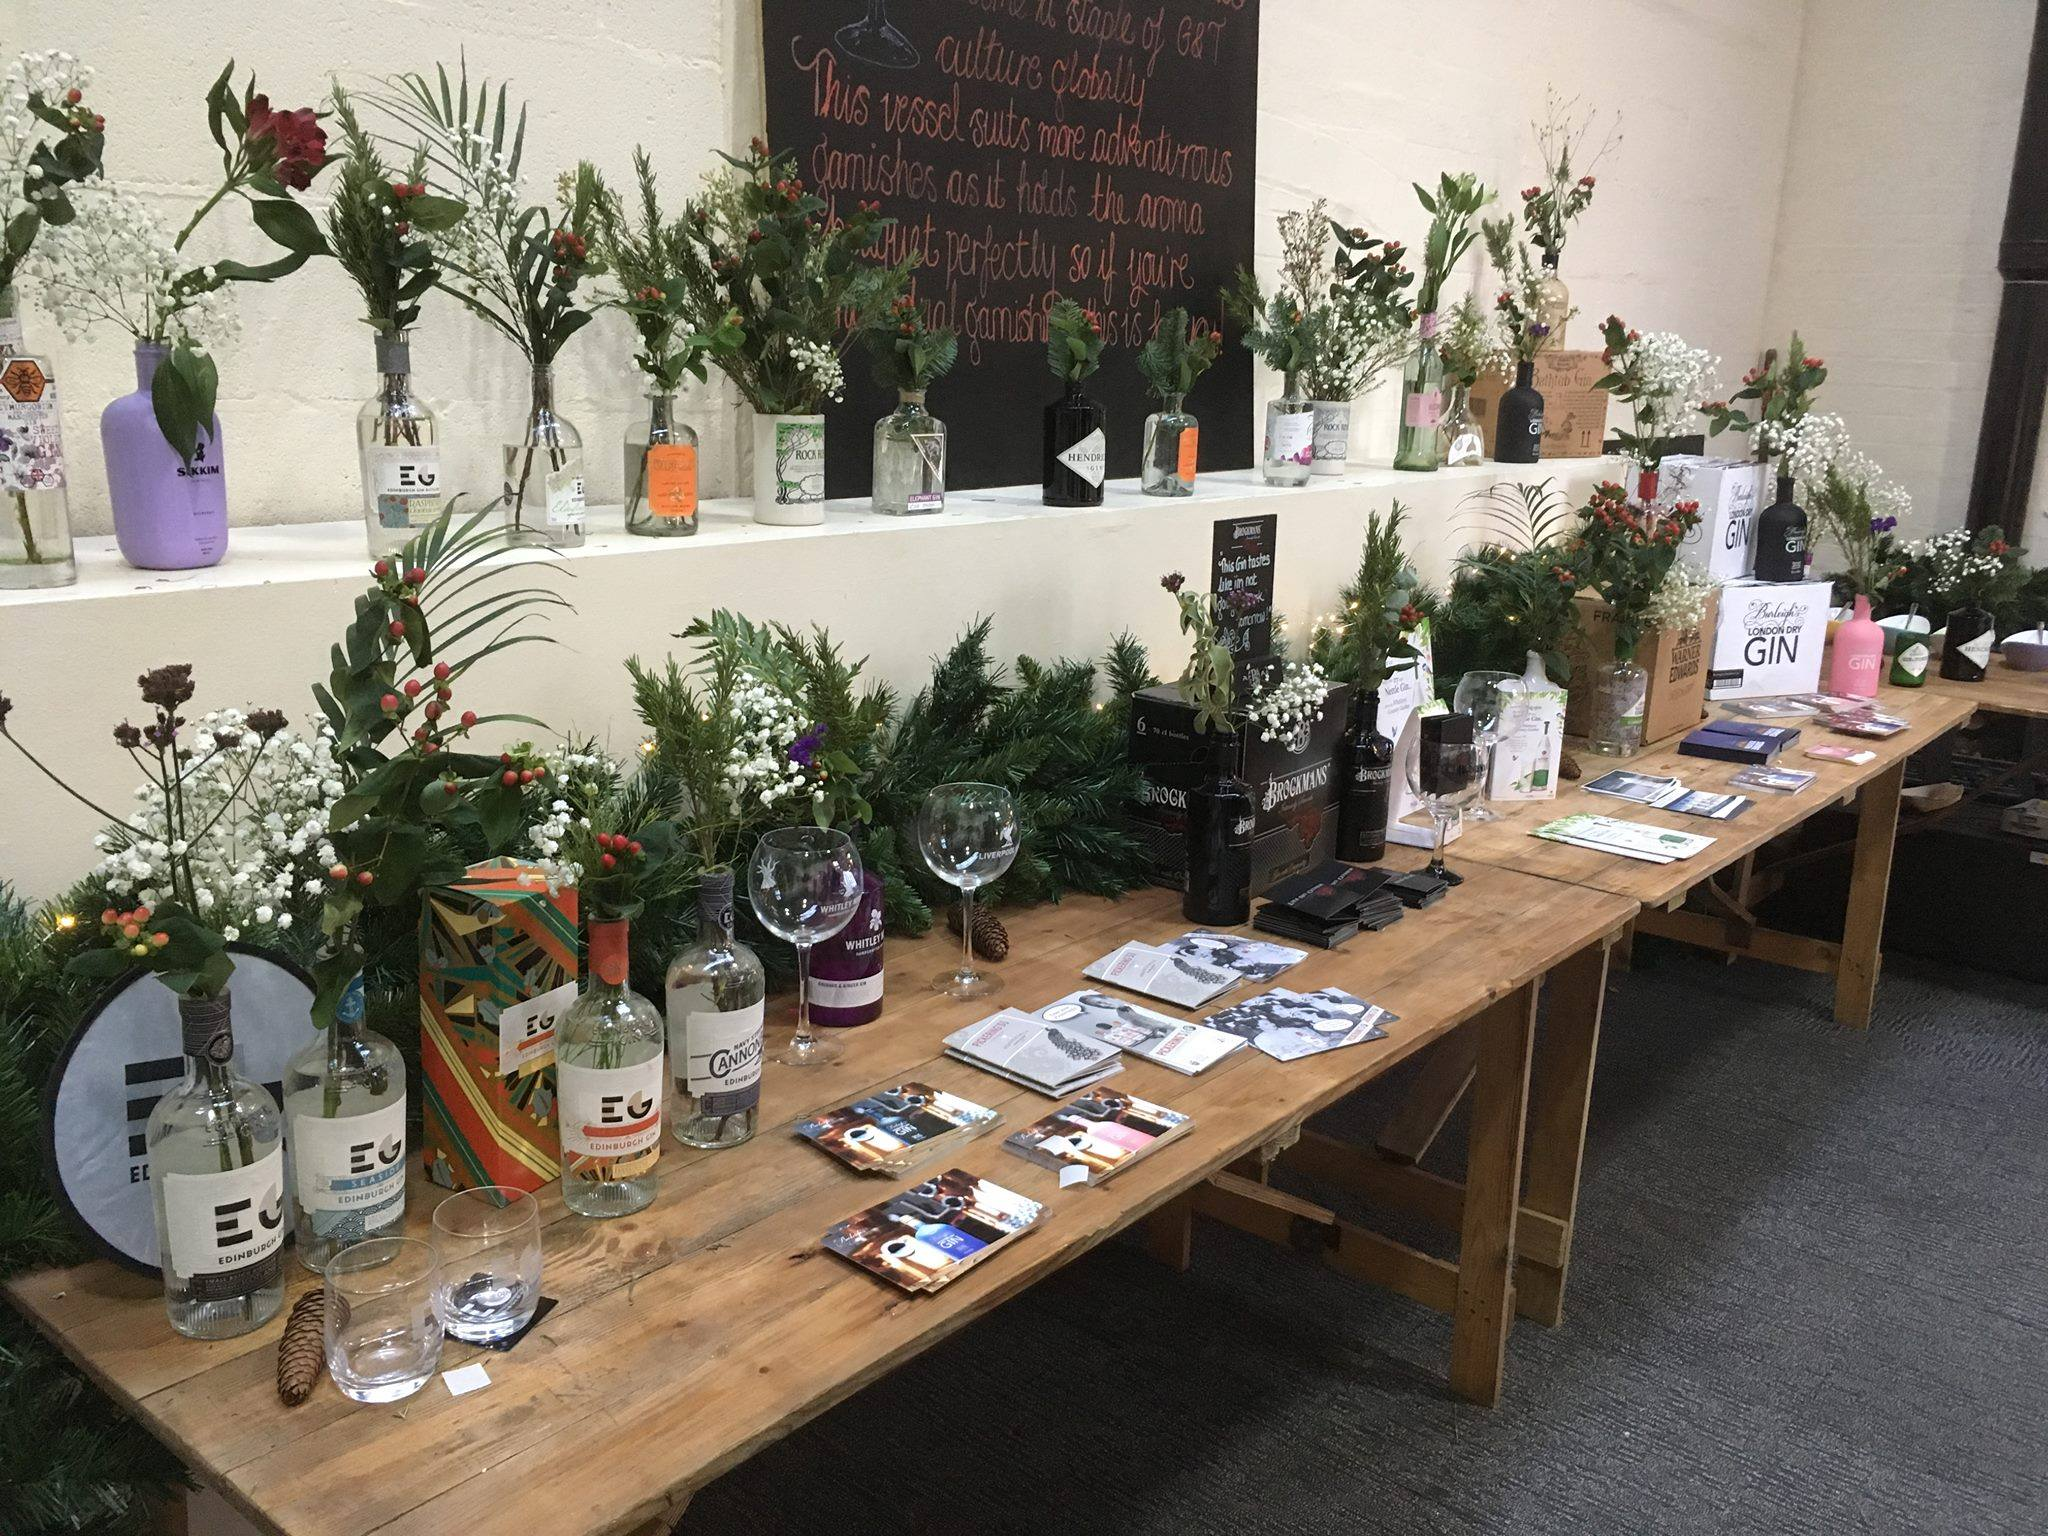 Rustic Trestle Tables Hire for Gin Fayre - BE Event Hire